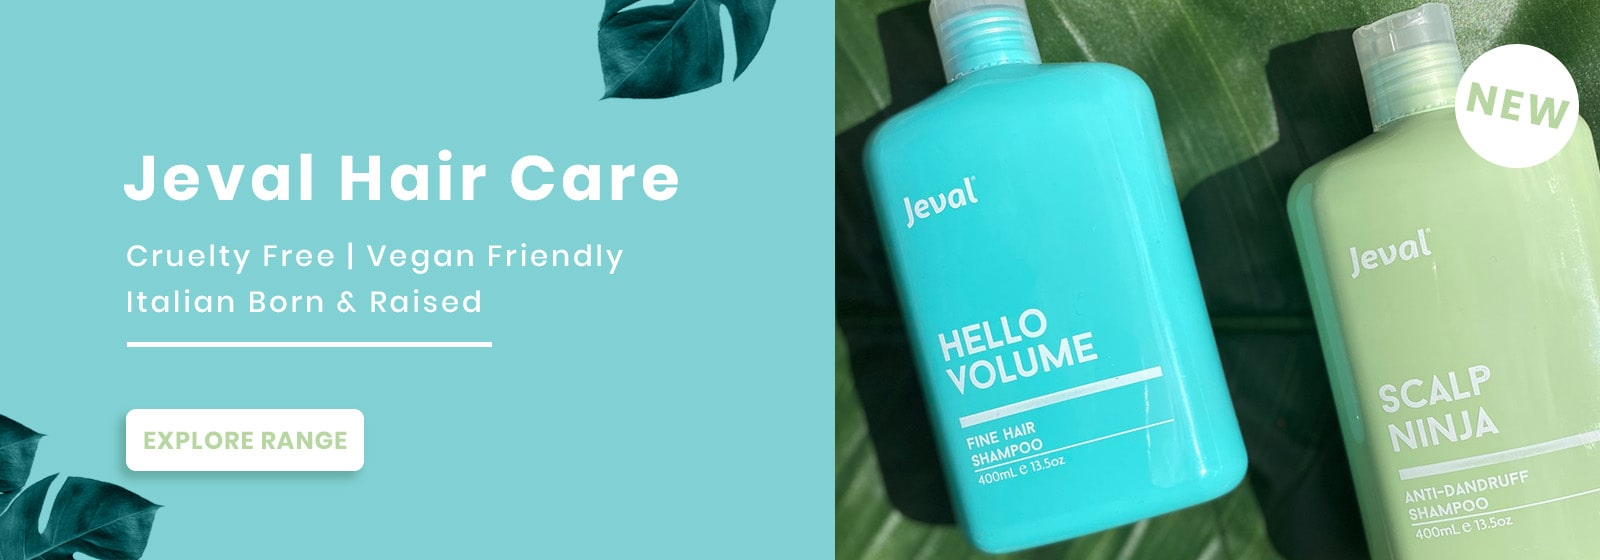 New Jeval Products - Now Available at Catwalk Hair & Beauty Store Australia